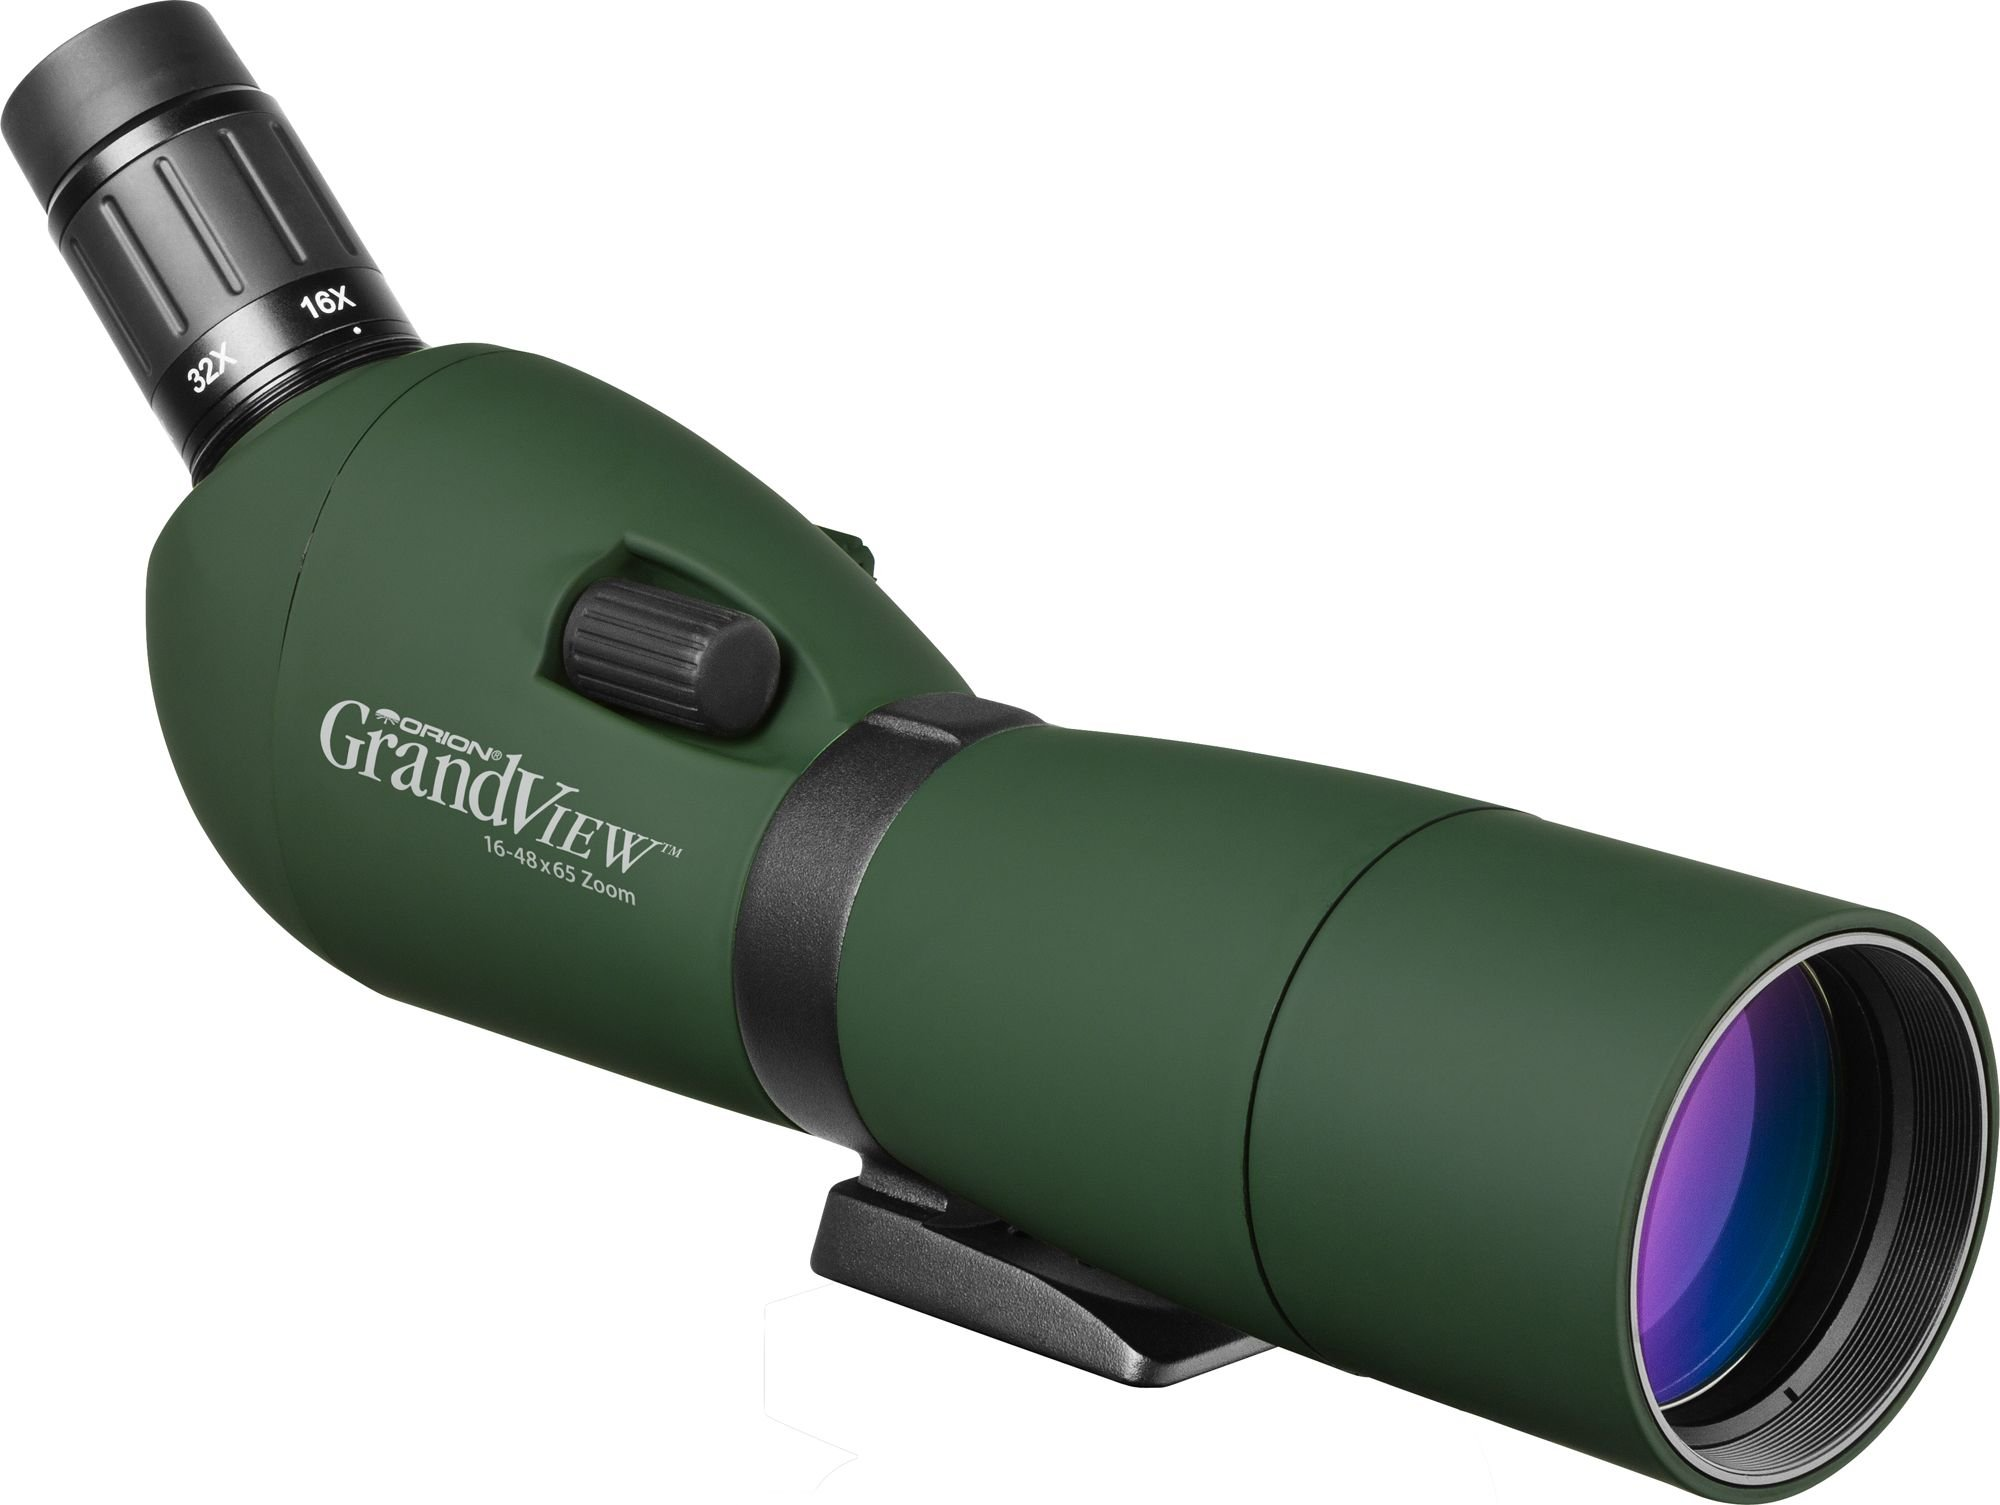 Orion 52205 GrandView 16-48x65mm Waterproof Zoom Spotting Scope (Green) by Orion